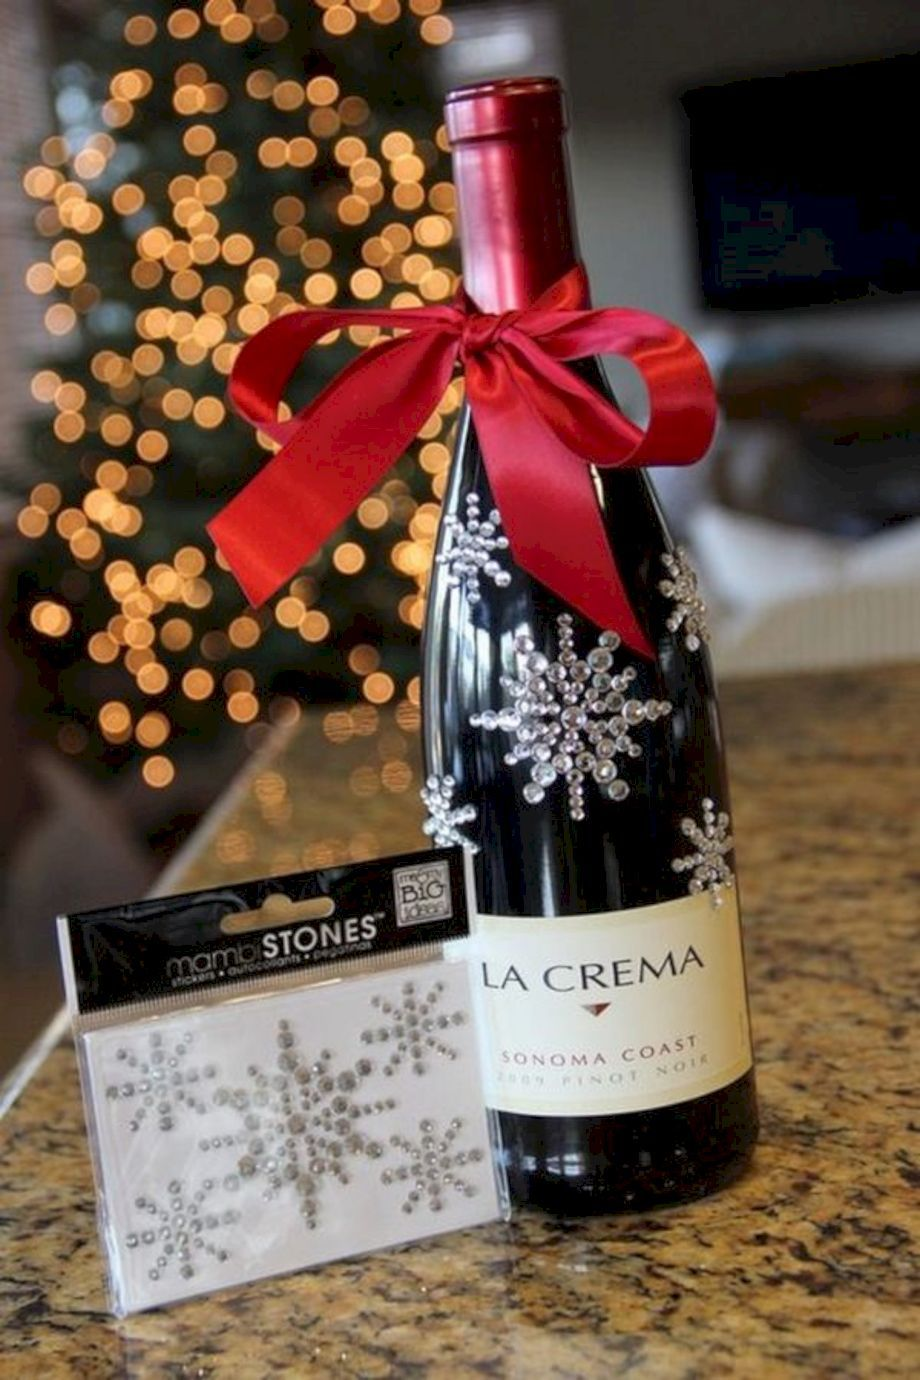 Cool 54 Amazing Diy Wine Gift Baskets Ideas Https About Ruth Com 2017 08 28 54 Amazing Diy Wine Gi Wine Christmas Gifts Wine Gifts Diy Diy Wine Gift Baskets